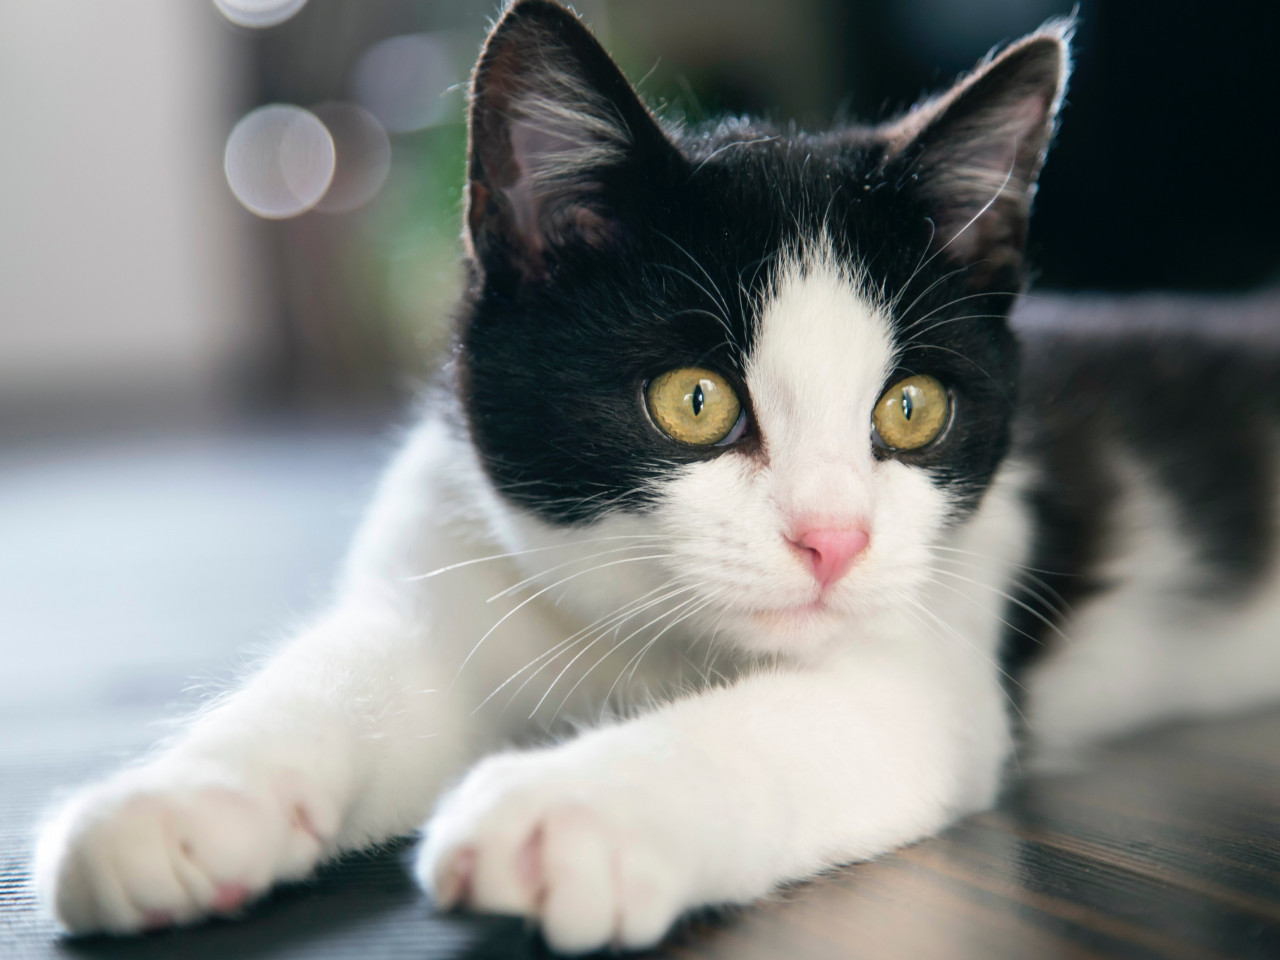 Black and white cat wallpaper 1280x960